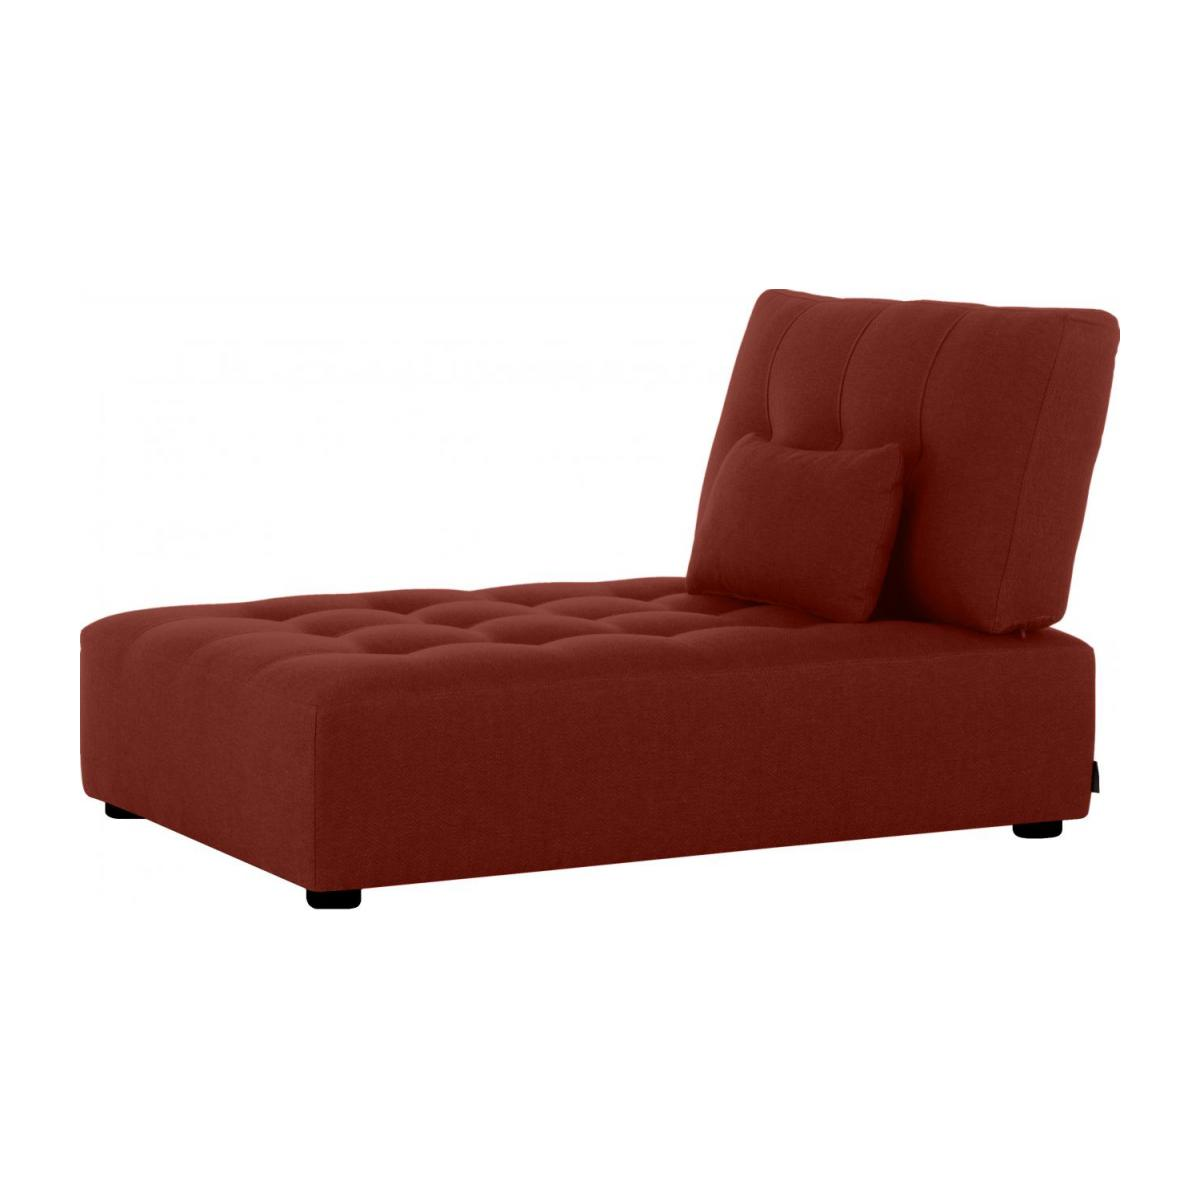 Chaiselongue-Tela-Burdeos n°1